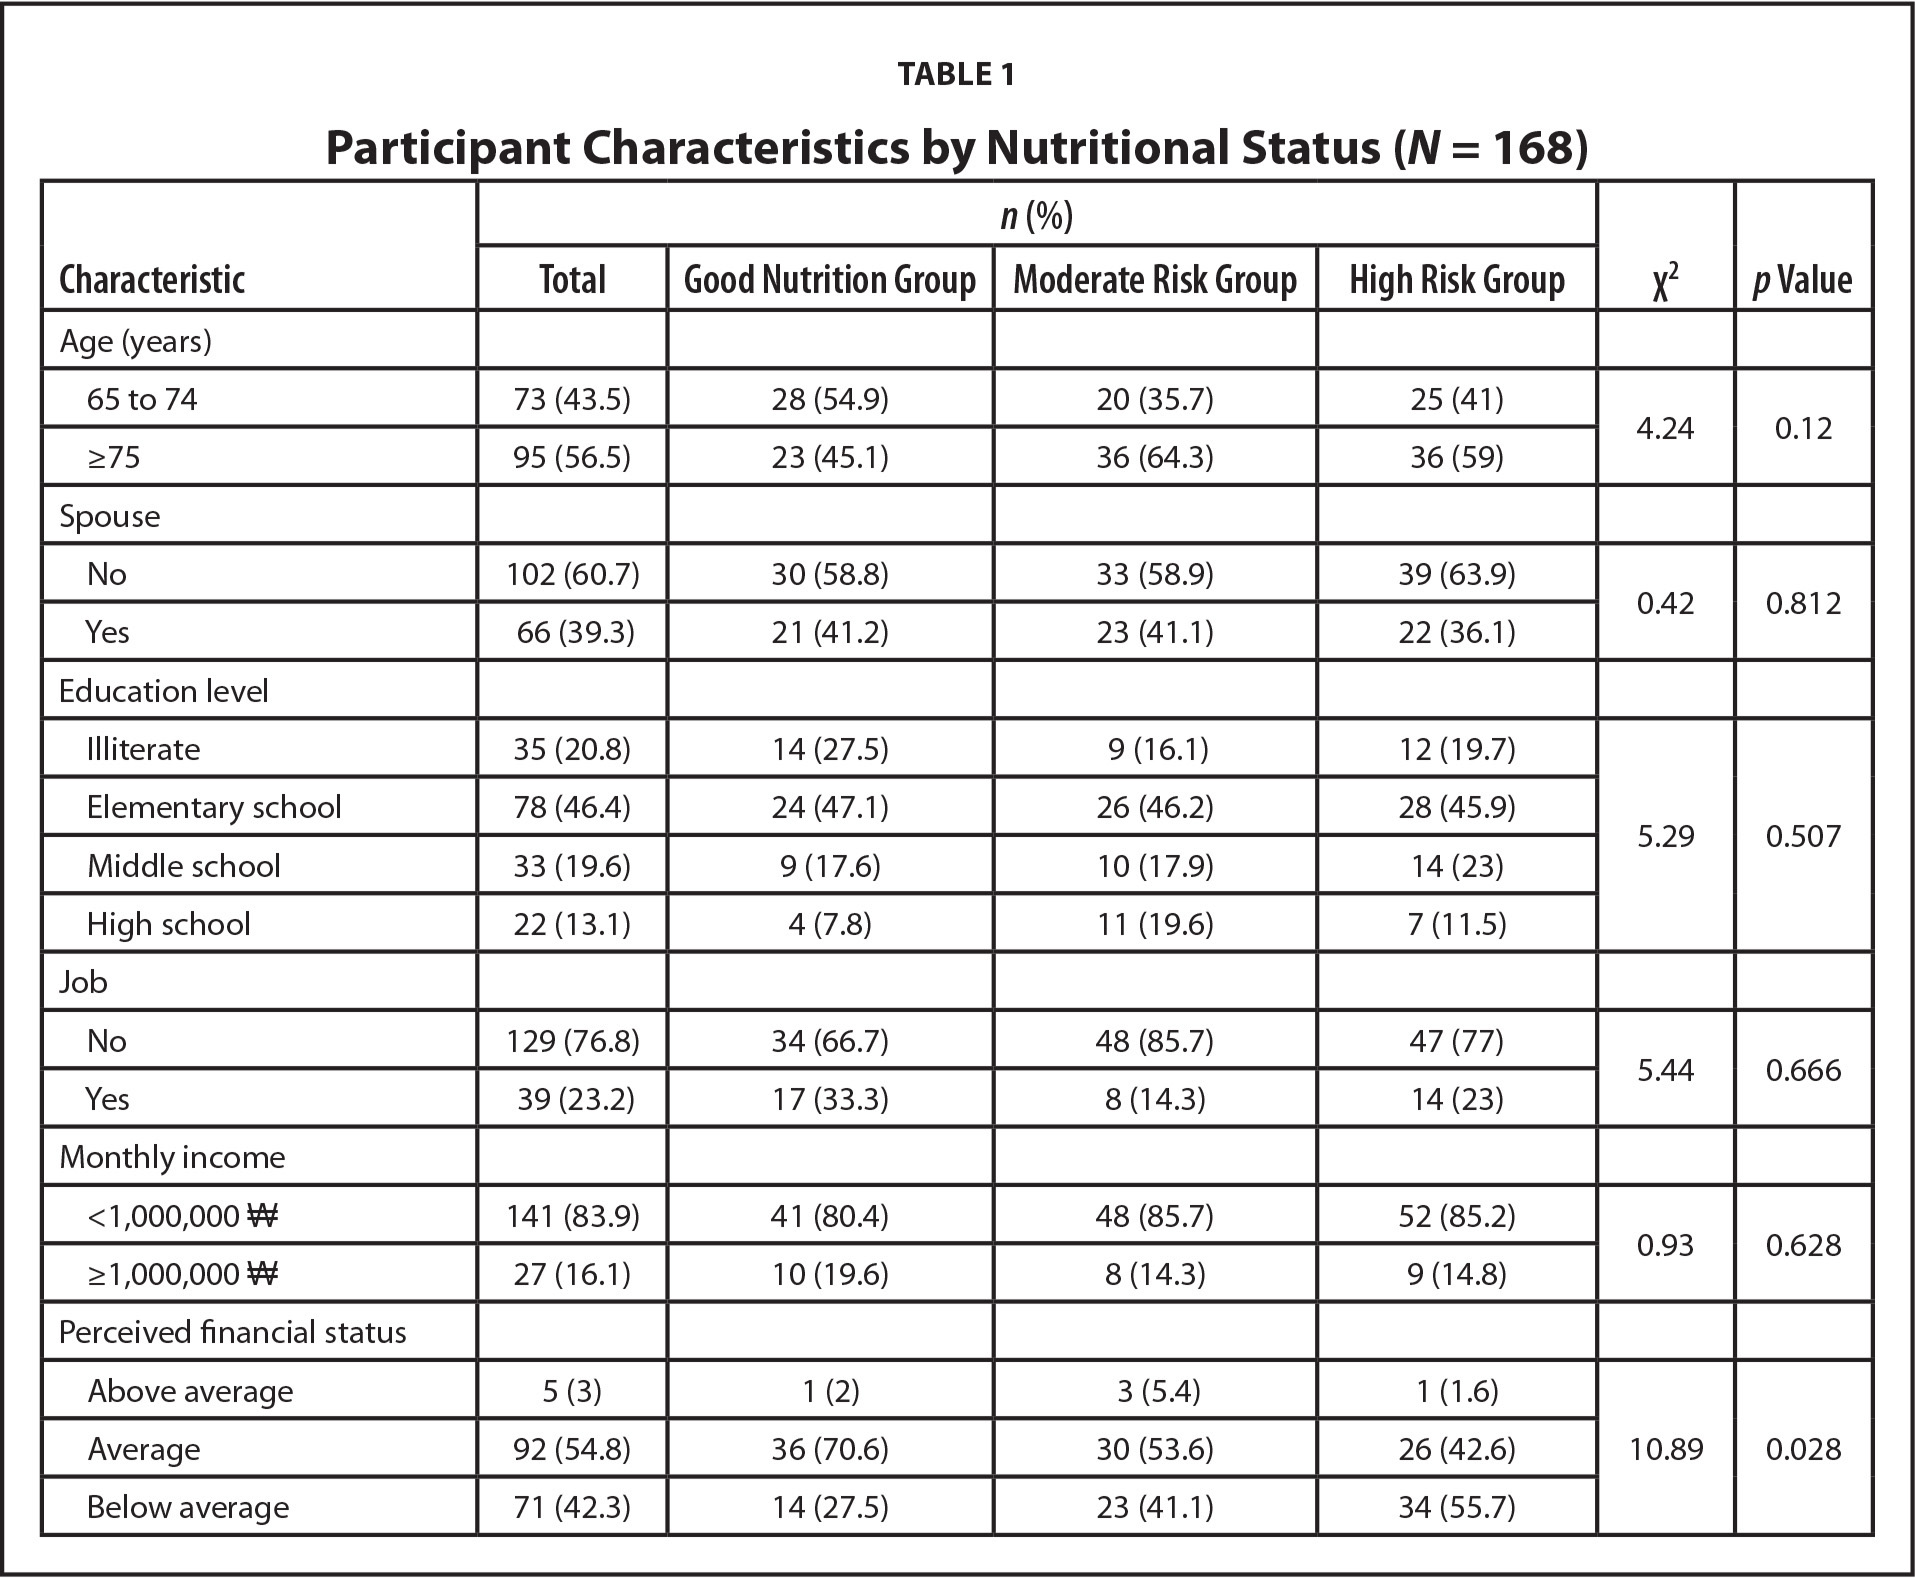 Participant Characteristics by Nutritional Status (N = 168)